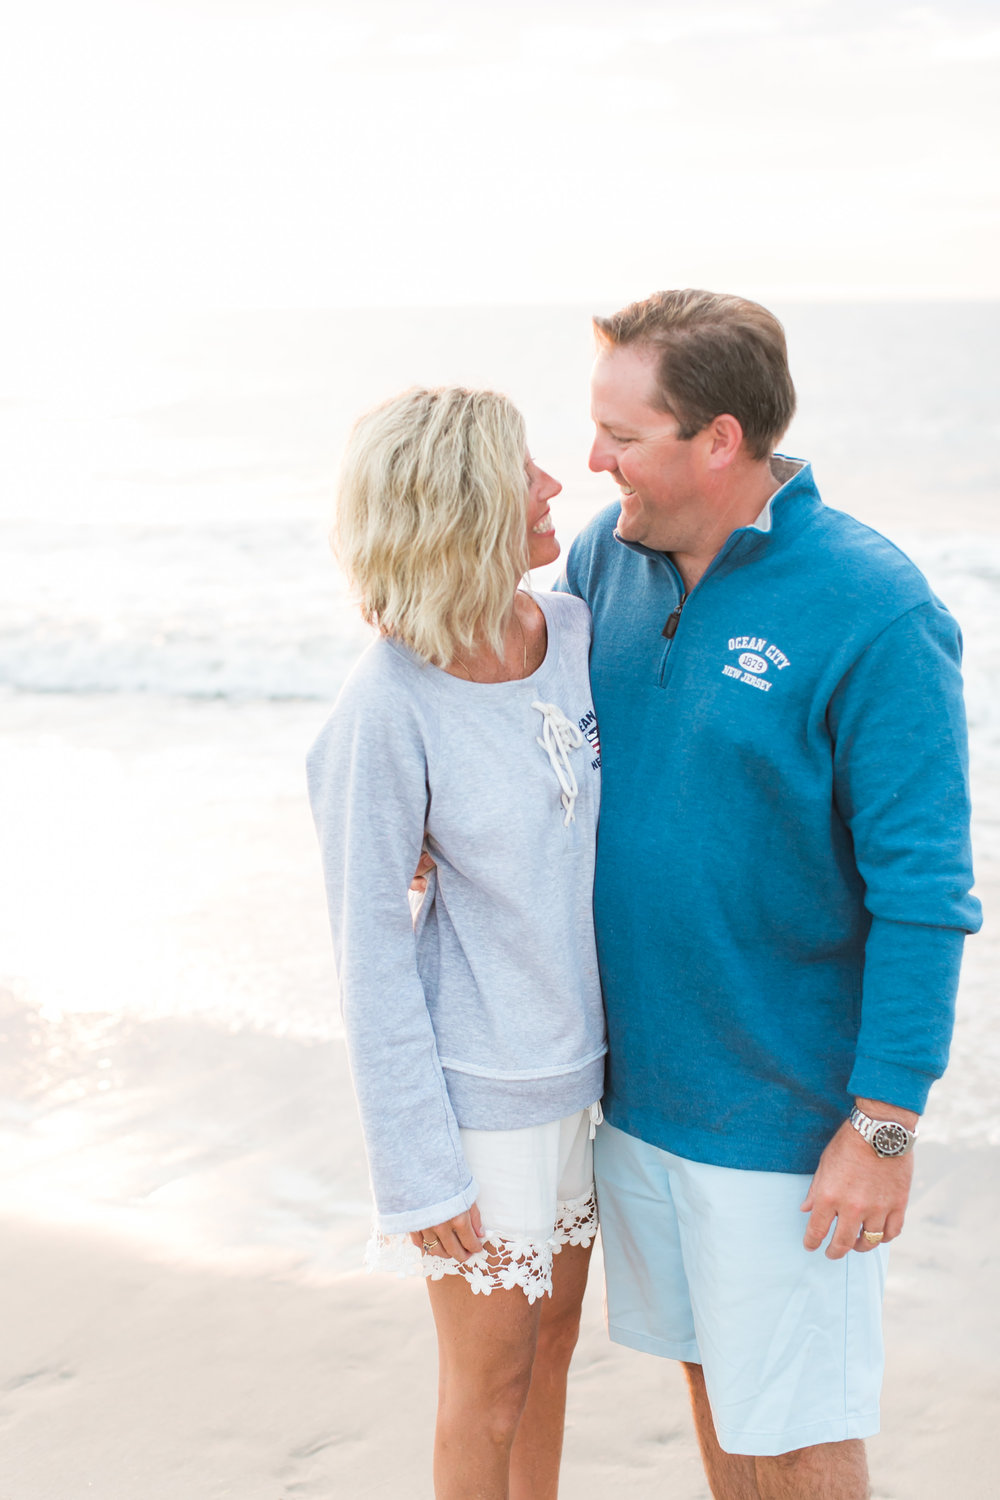 Magdalena Studios - Beach Family Photographer in Ocean City New Jersey NJ58.jpg